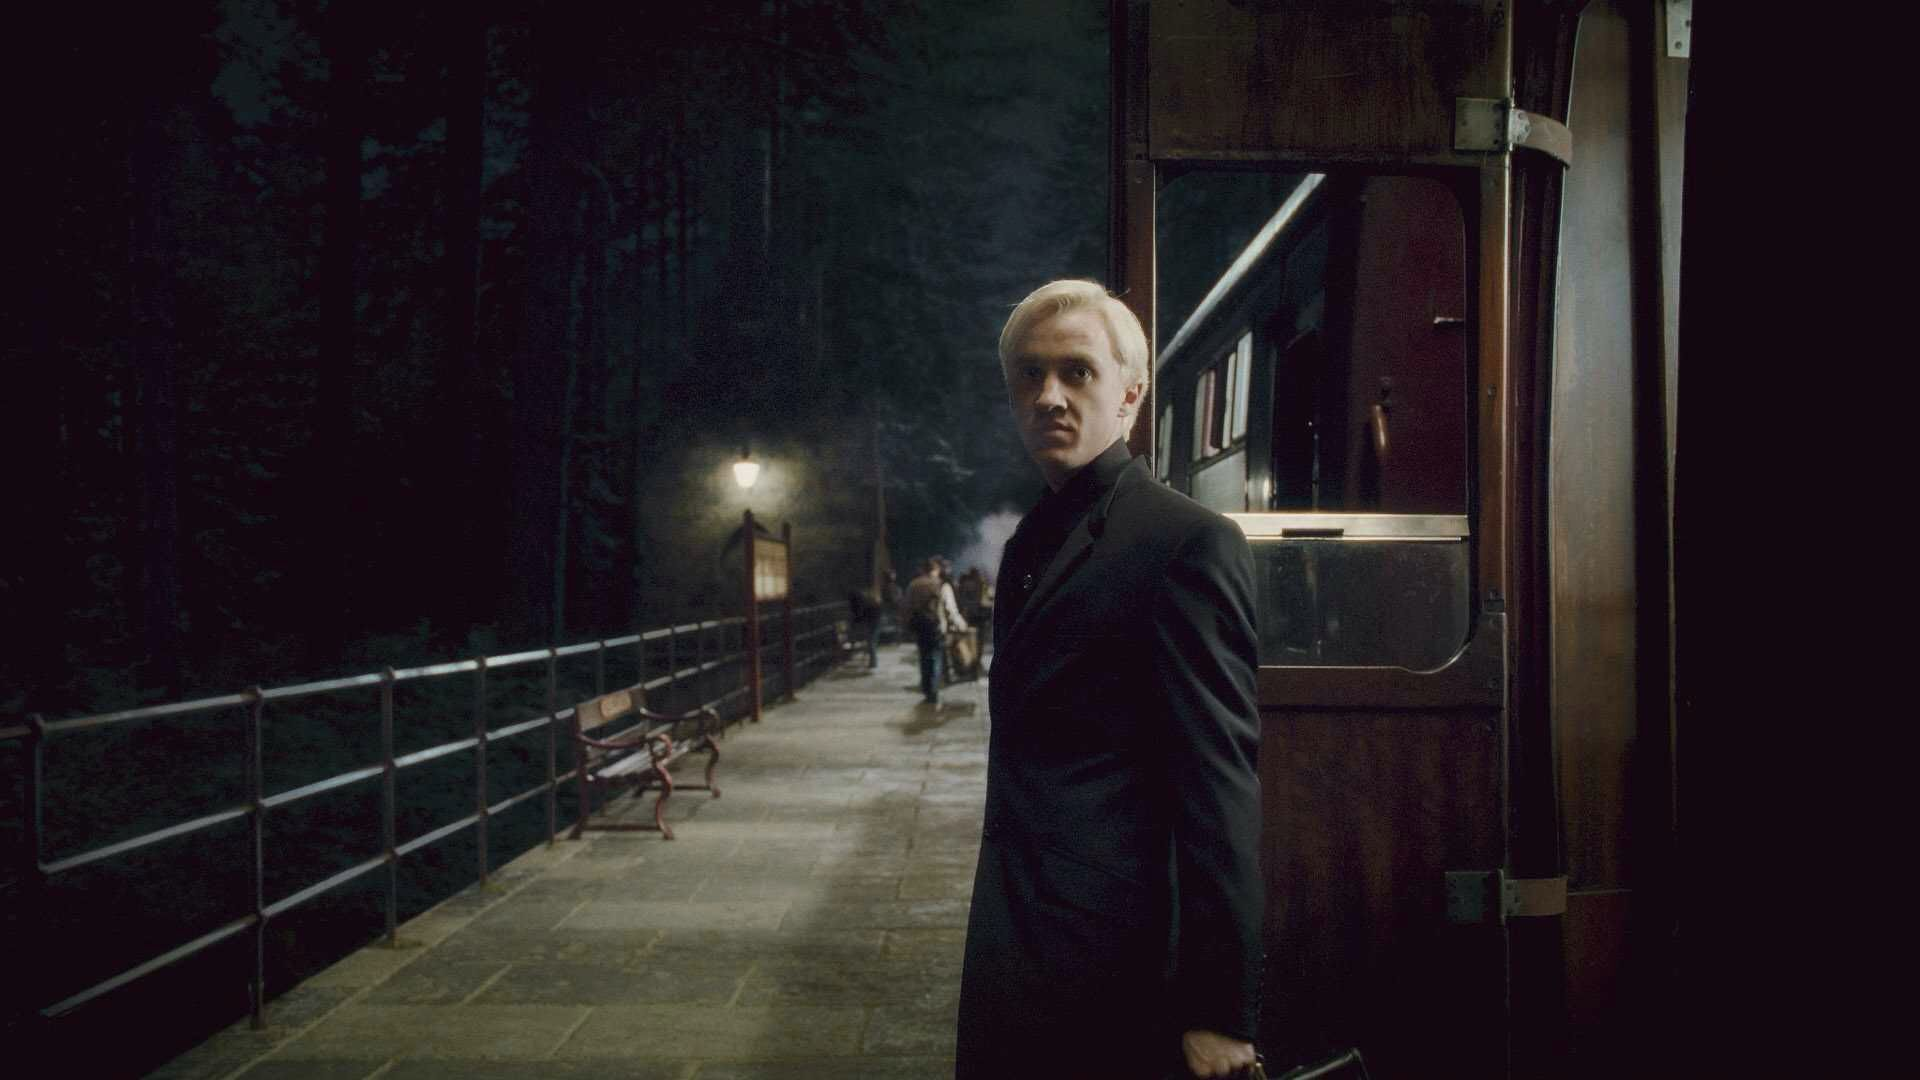 Pin By Sophie Green On Harry Potter Draco Malfoy Draco Harry Potter